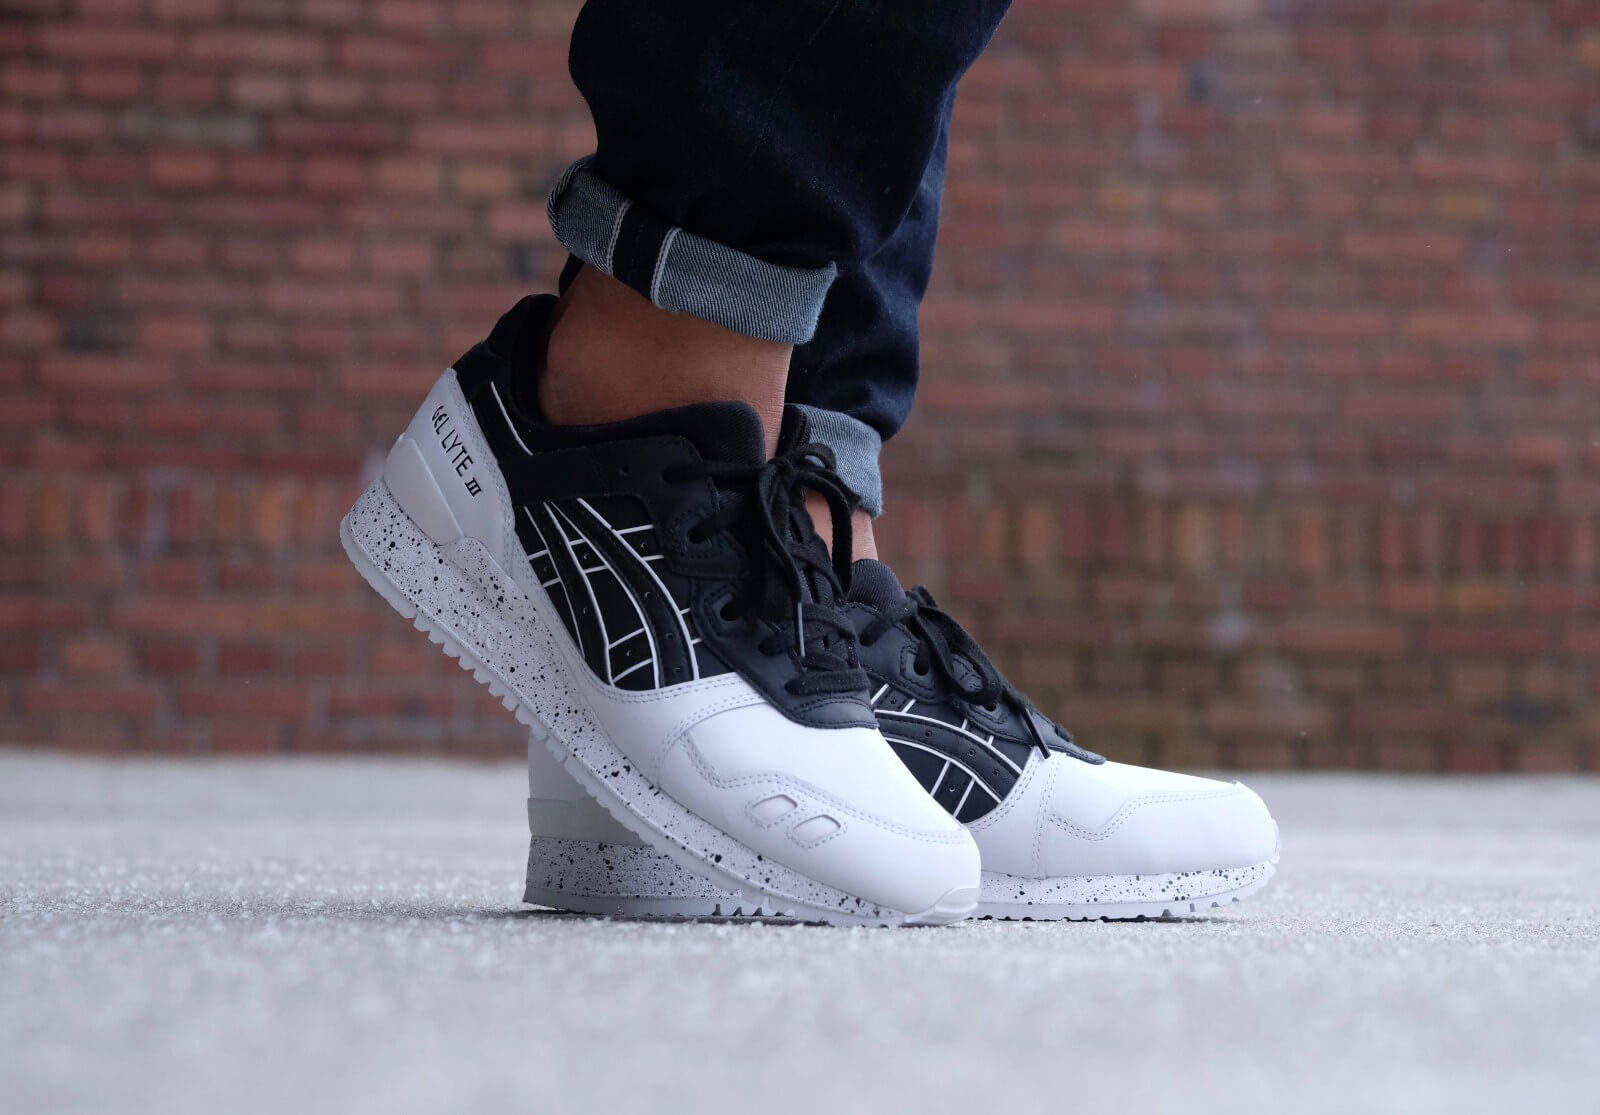 separation shoes 1dfb4 8f434 gel lyte iii black